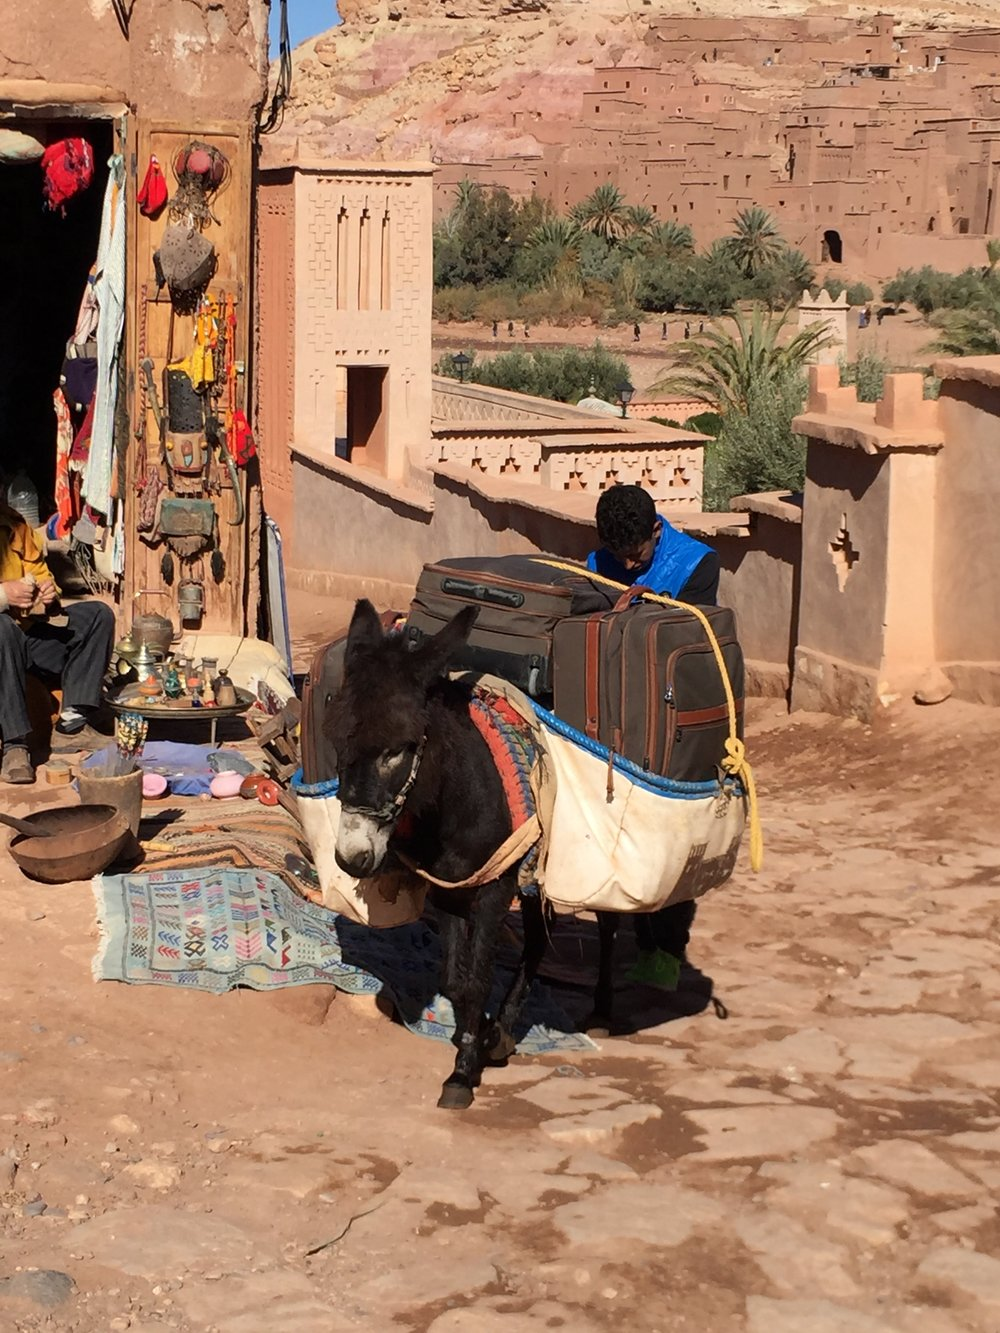 Donkeys are still used beasts of burden, pulling carts or carrying people, in the countryside and city alike.